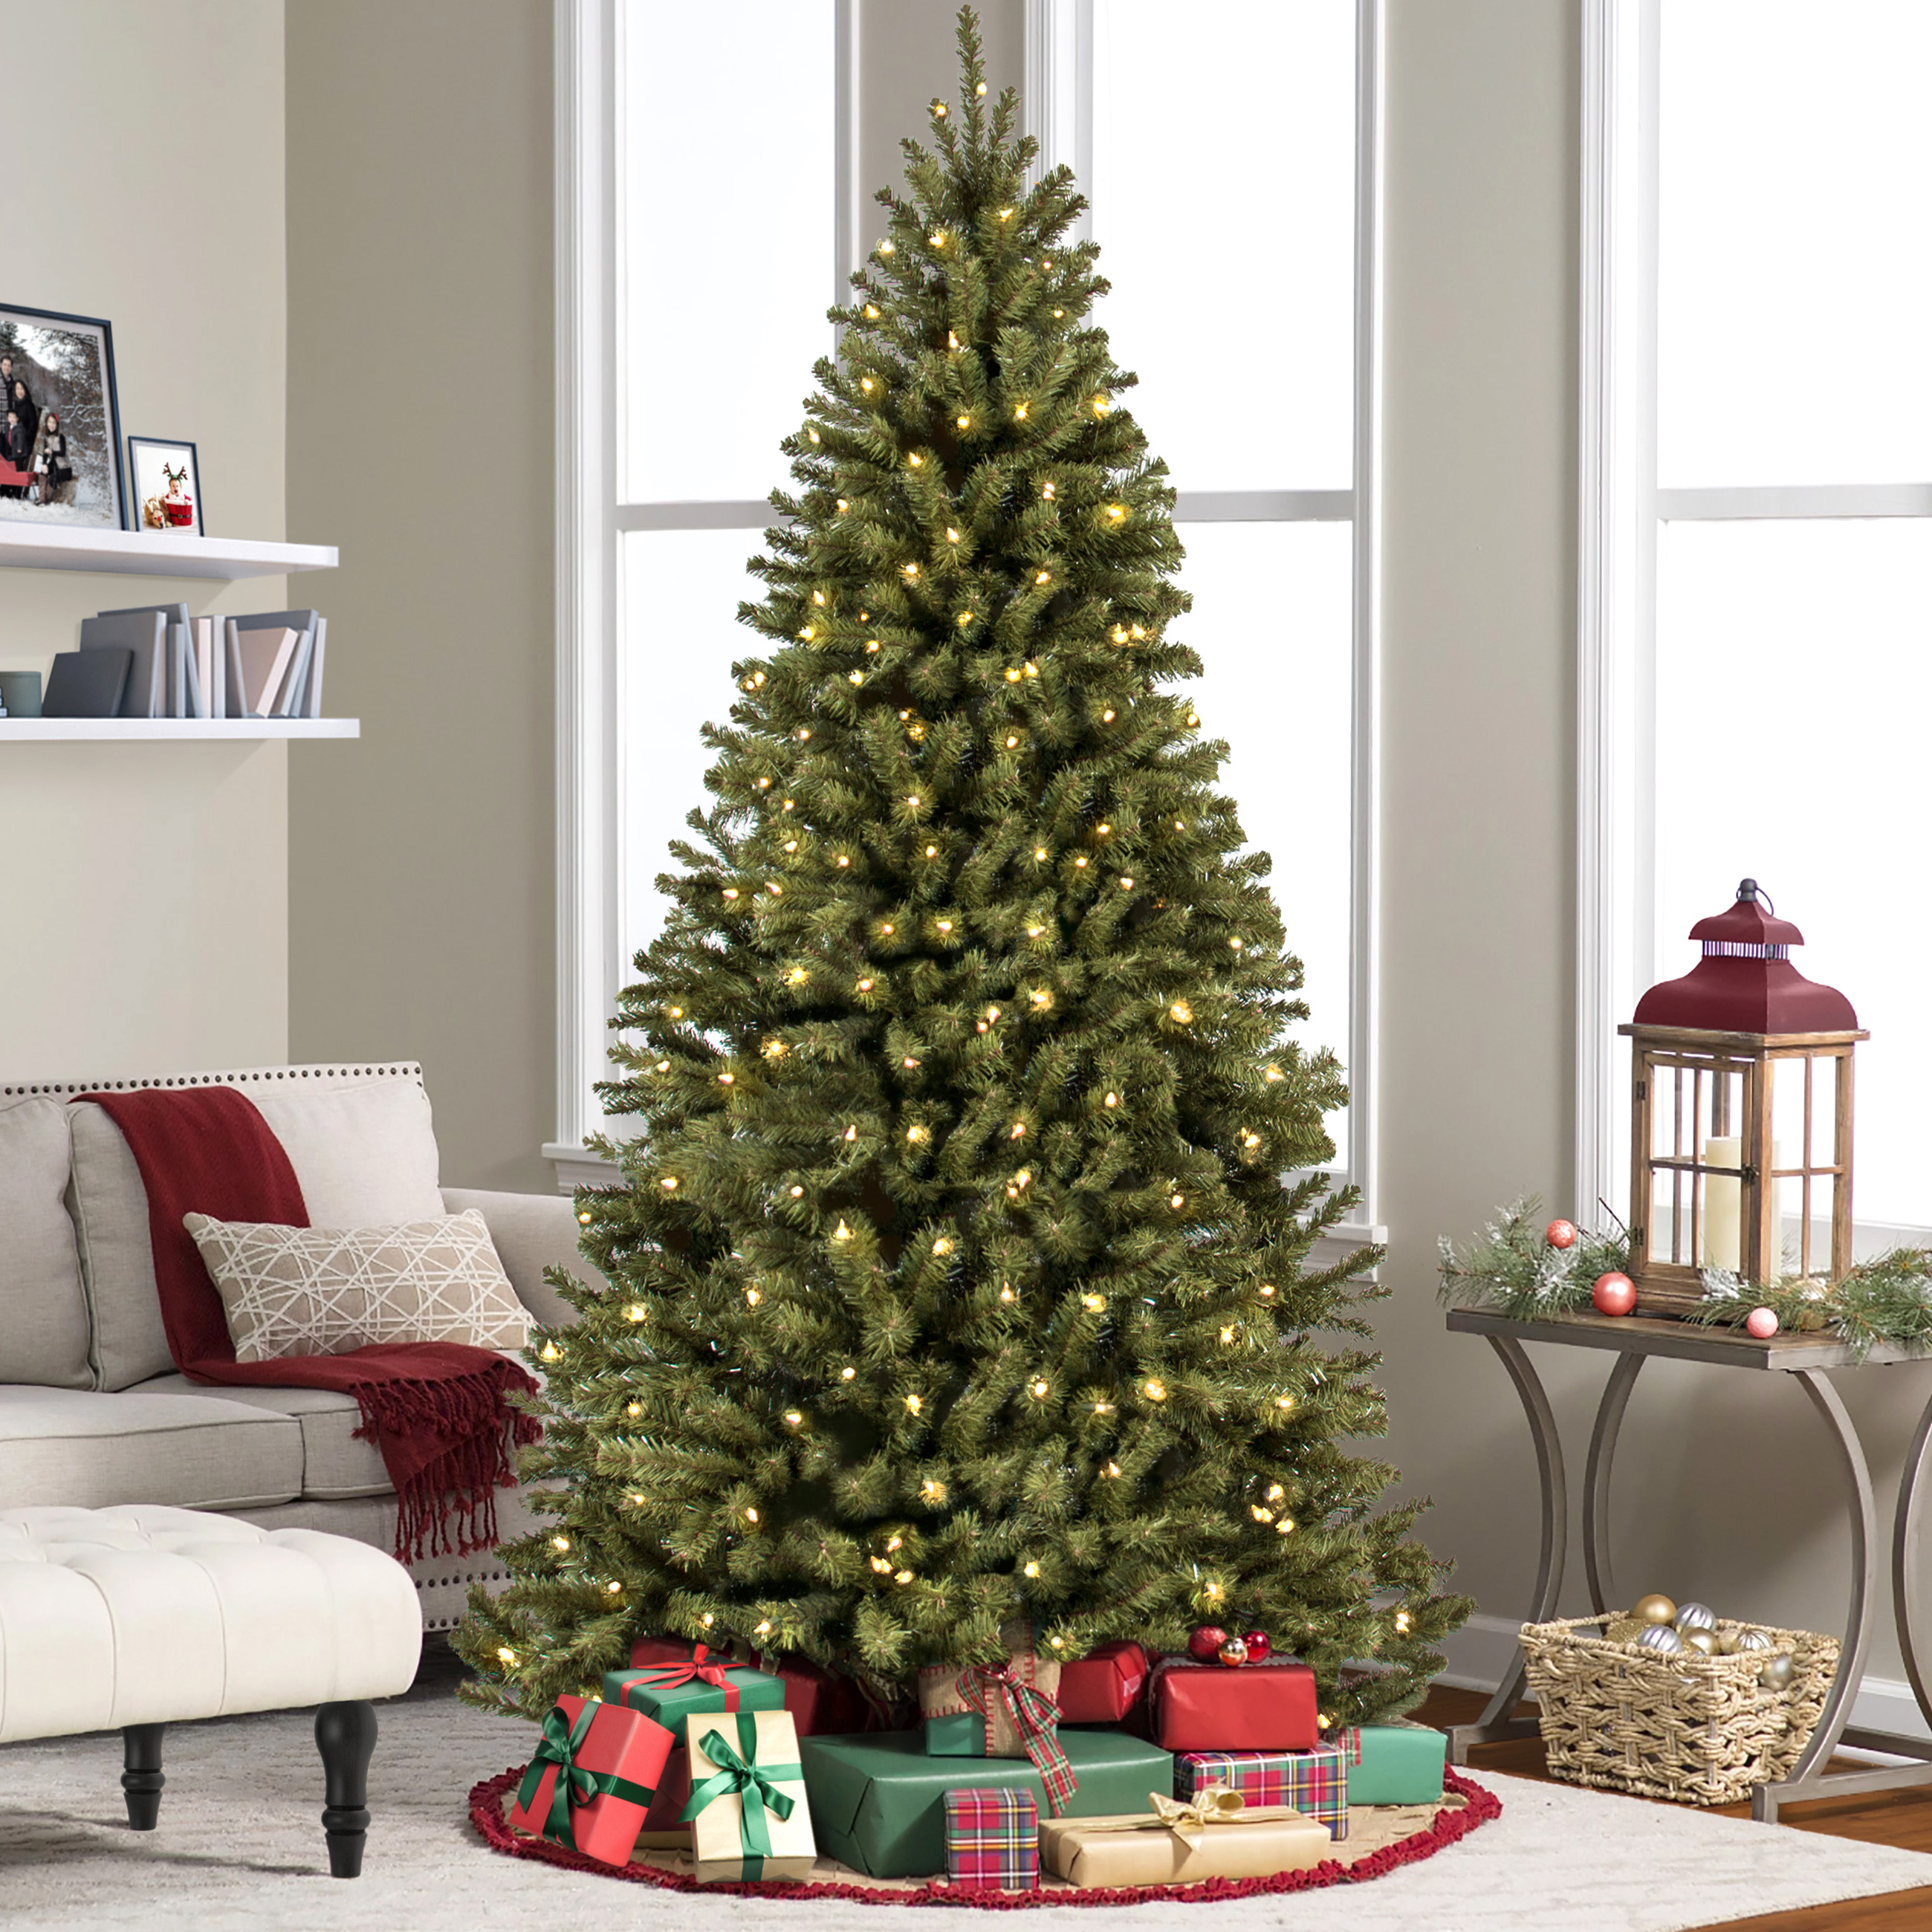 Best Choice Products 7.5ft Pre-Lit Spruce Hinged Artificial Christmas Tree w/ 550 LED Lights, Foldable Stand - Green